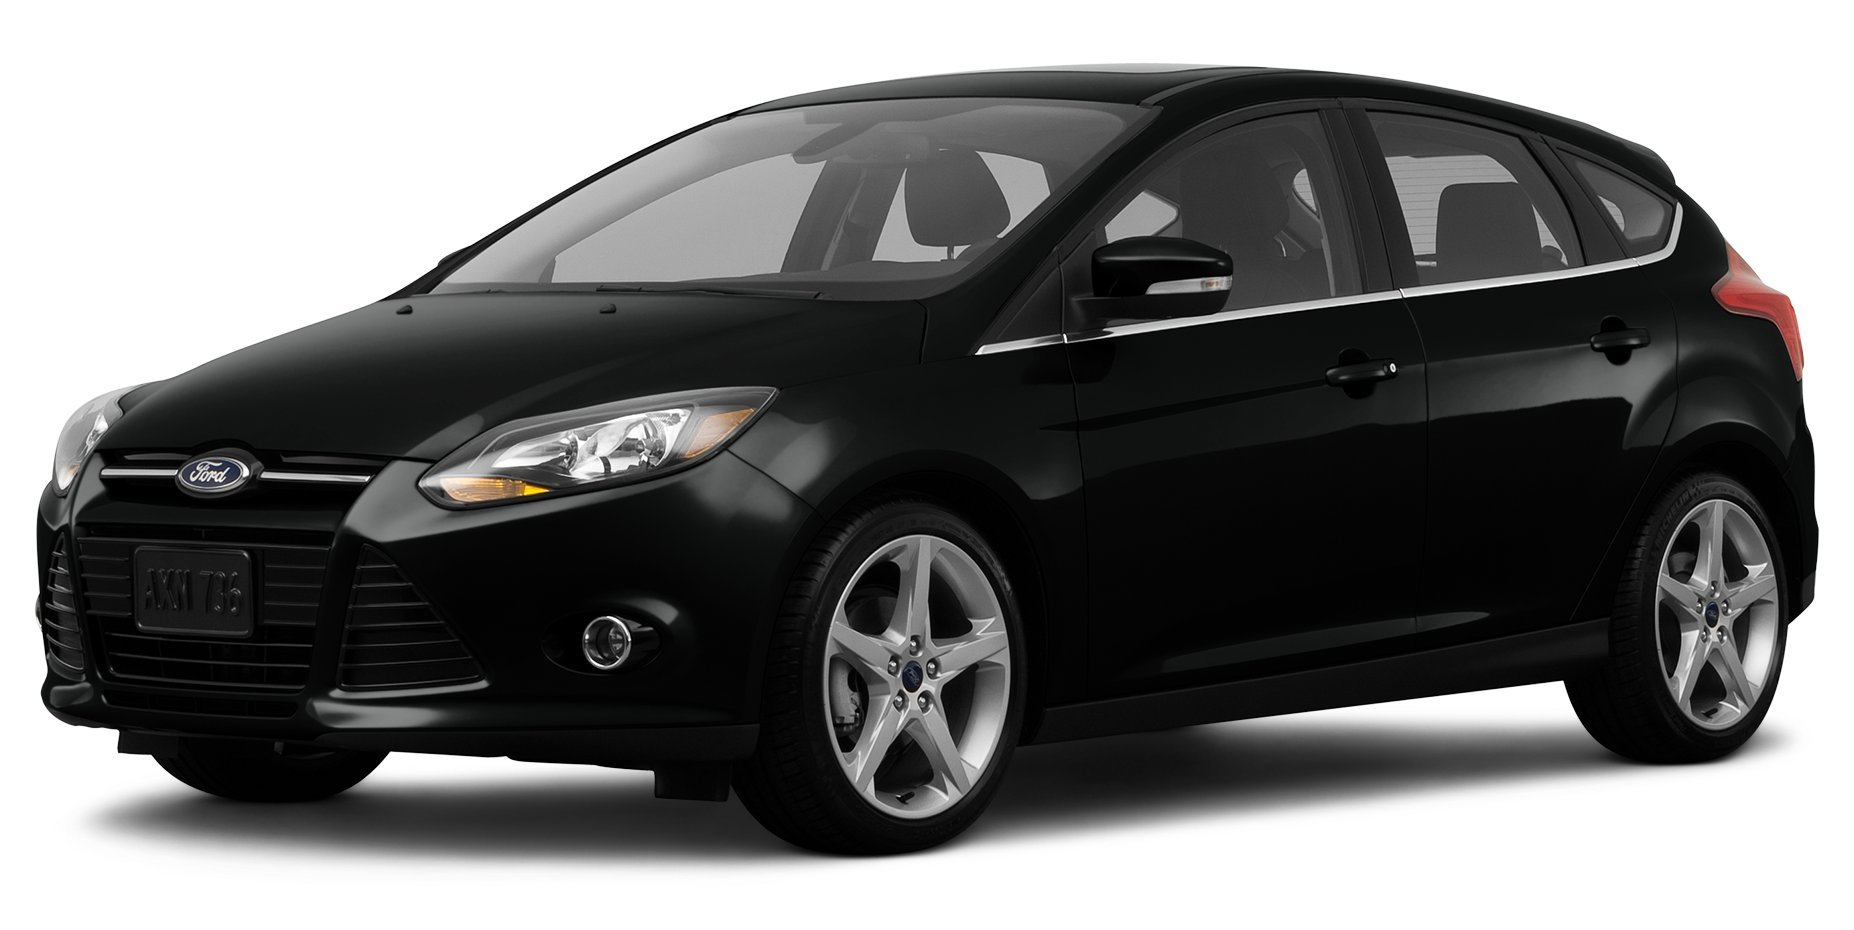 Amazon com: 2012 Ford Focus Reviews, Images, and Specs: Vehicles